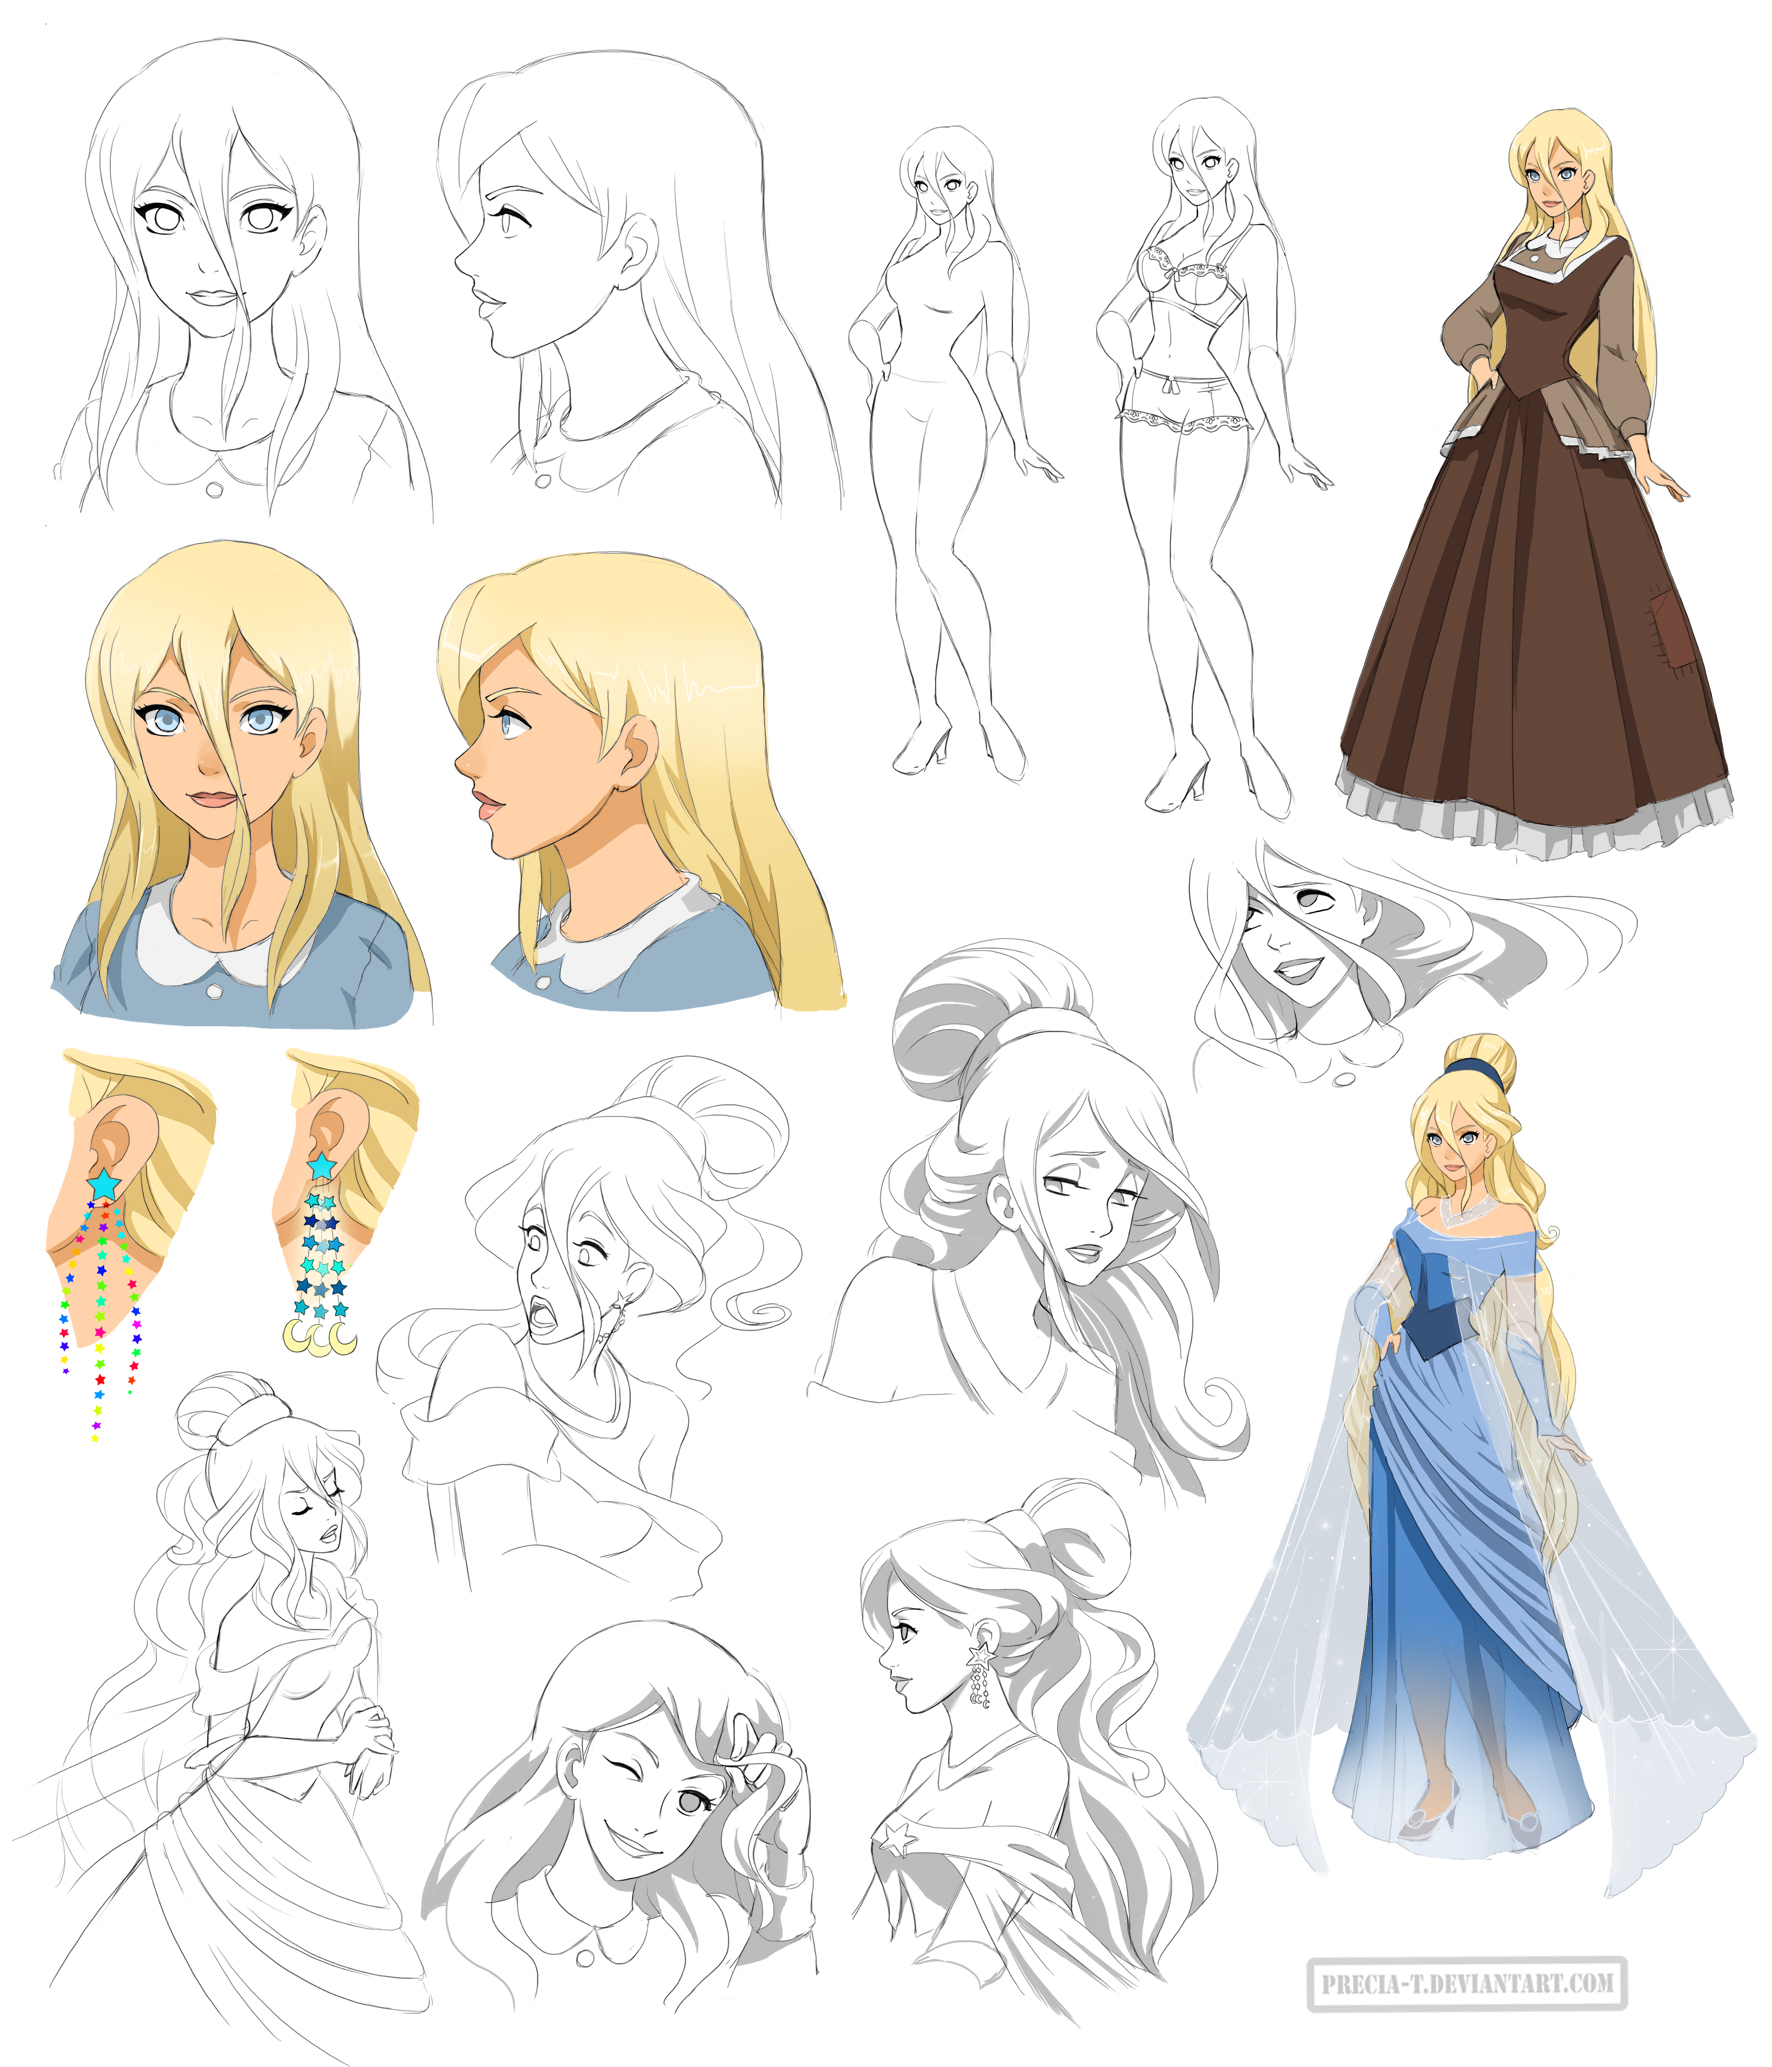 Character Design Jobs Disney : Disney princess design starina commission by precia t